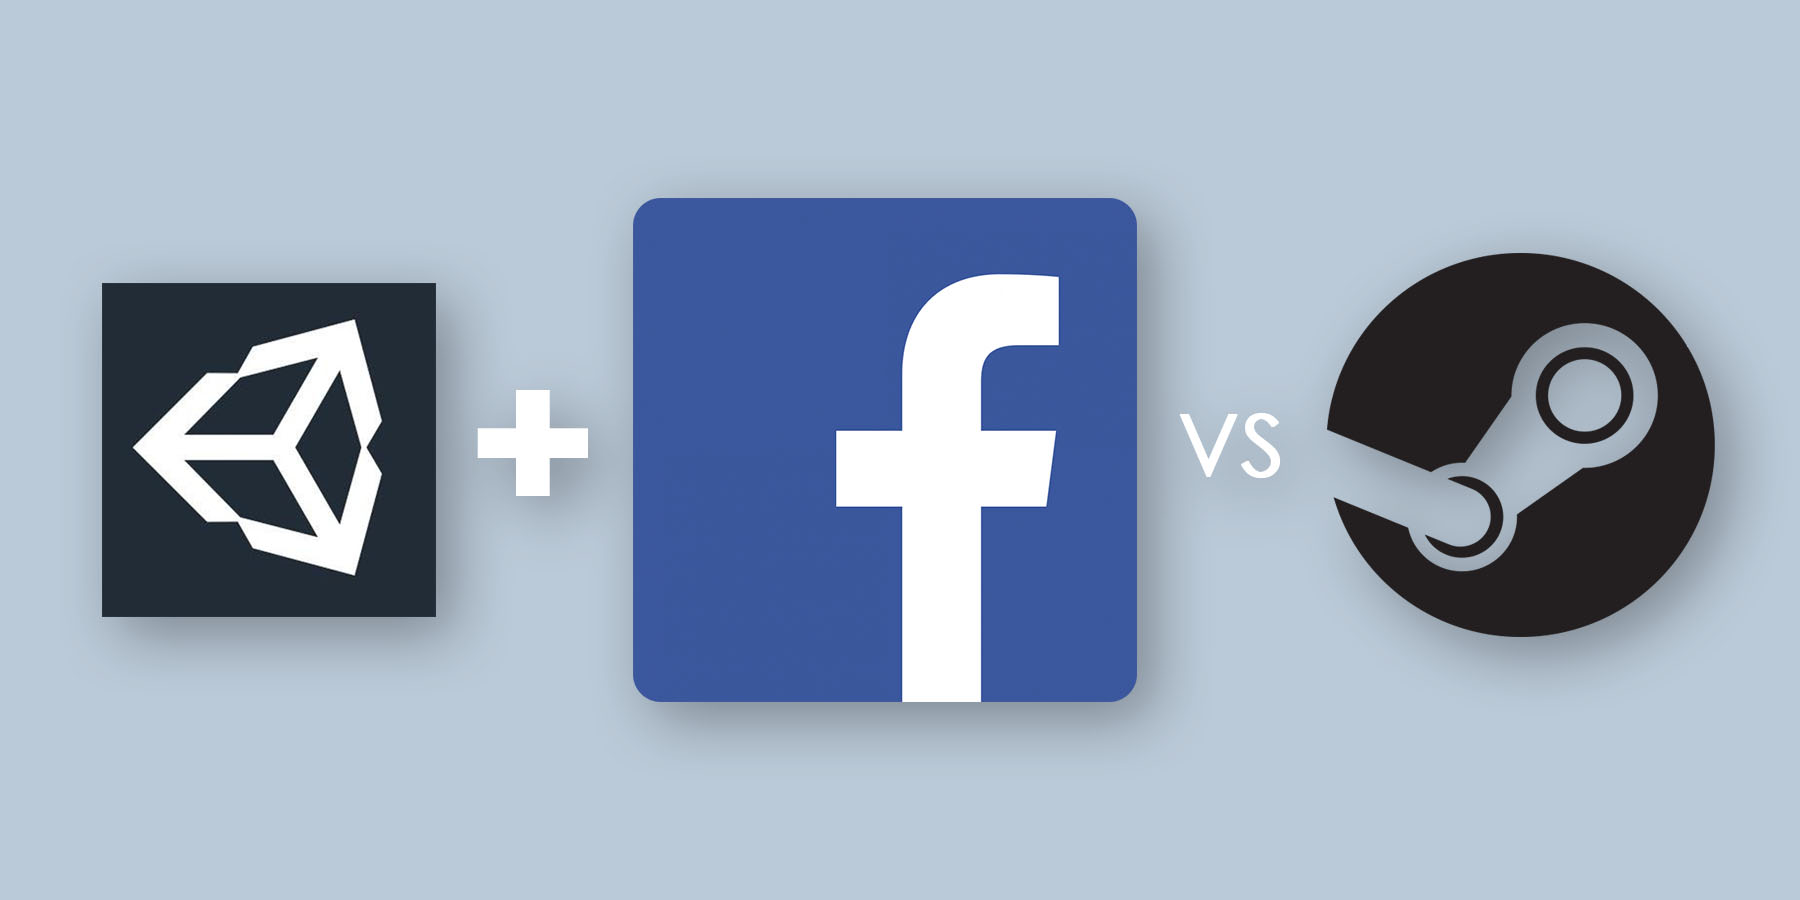 Facebook + Unity vs Steam